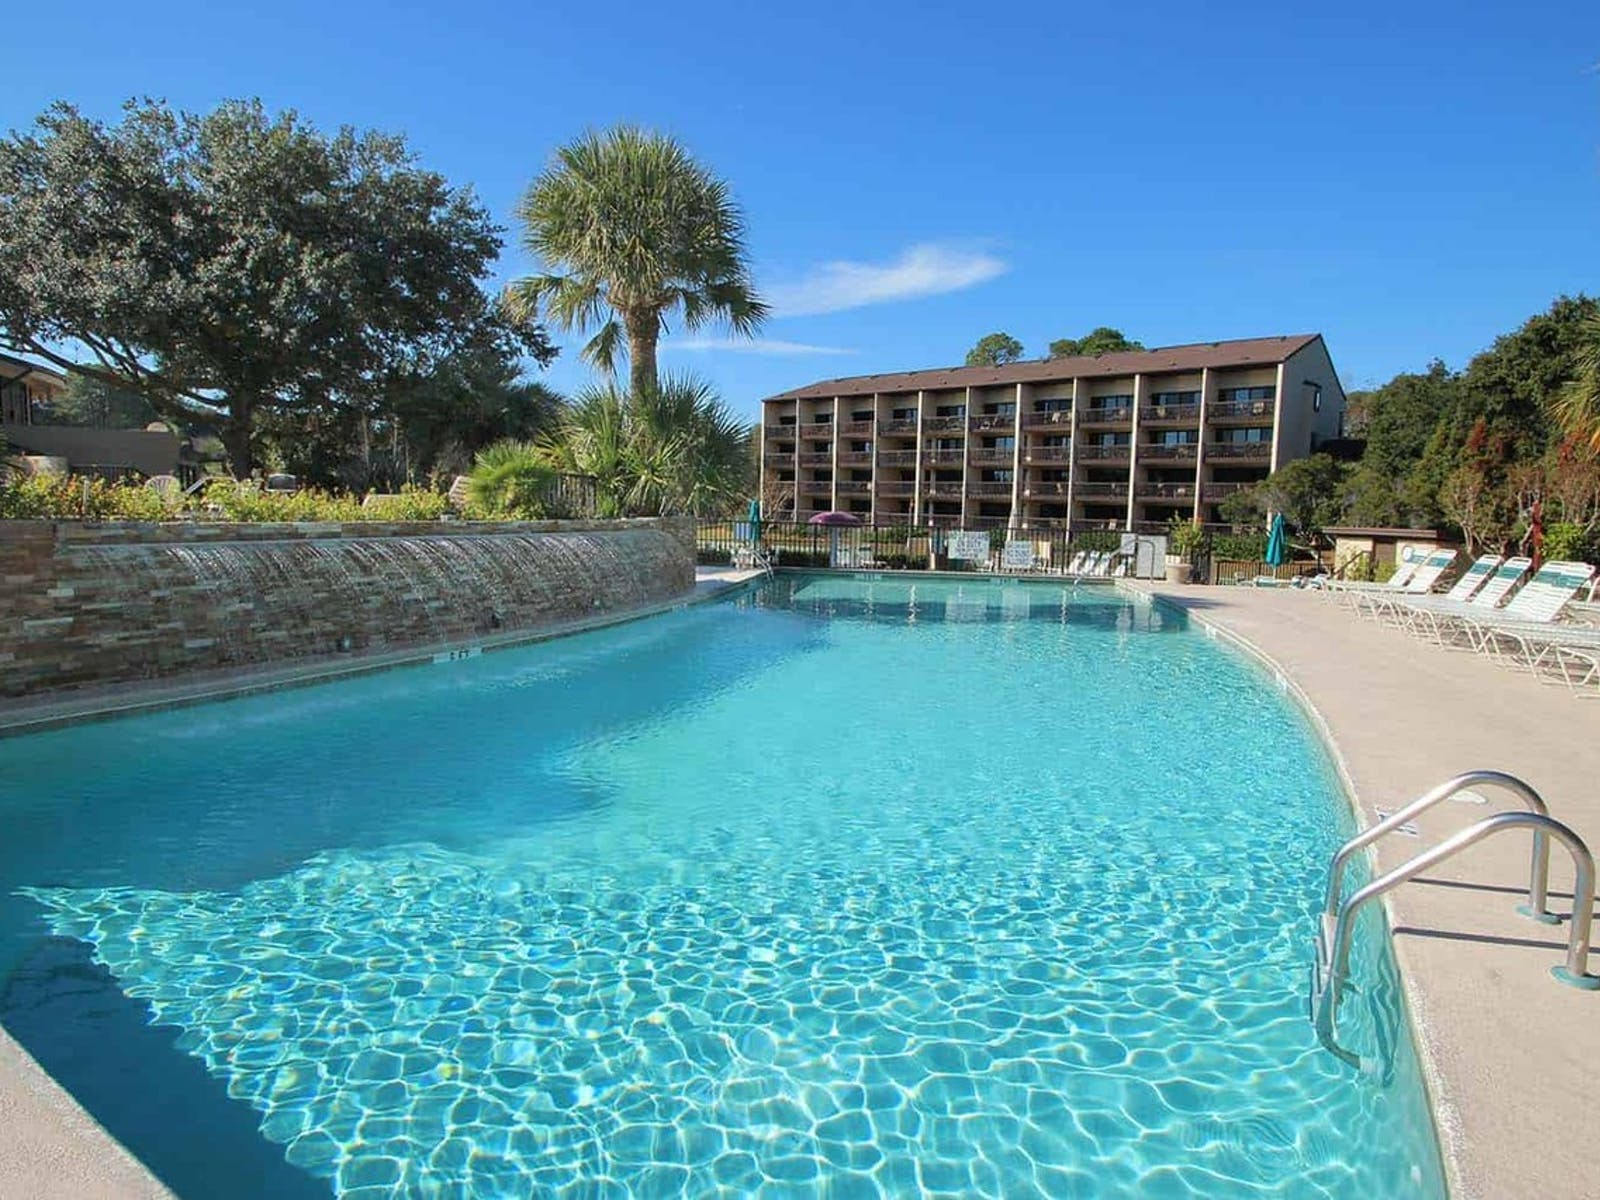 resort pool located in hilton head